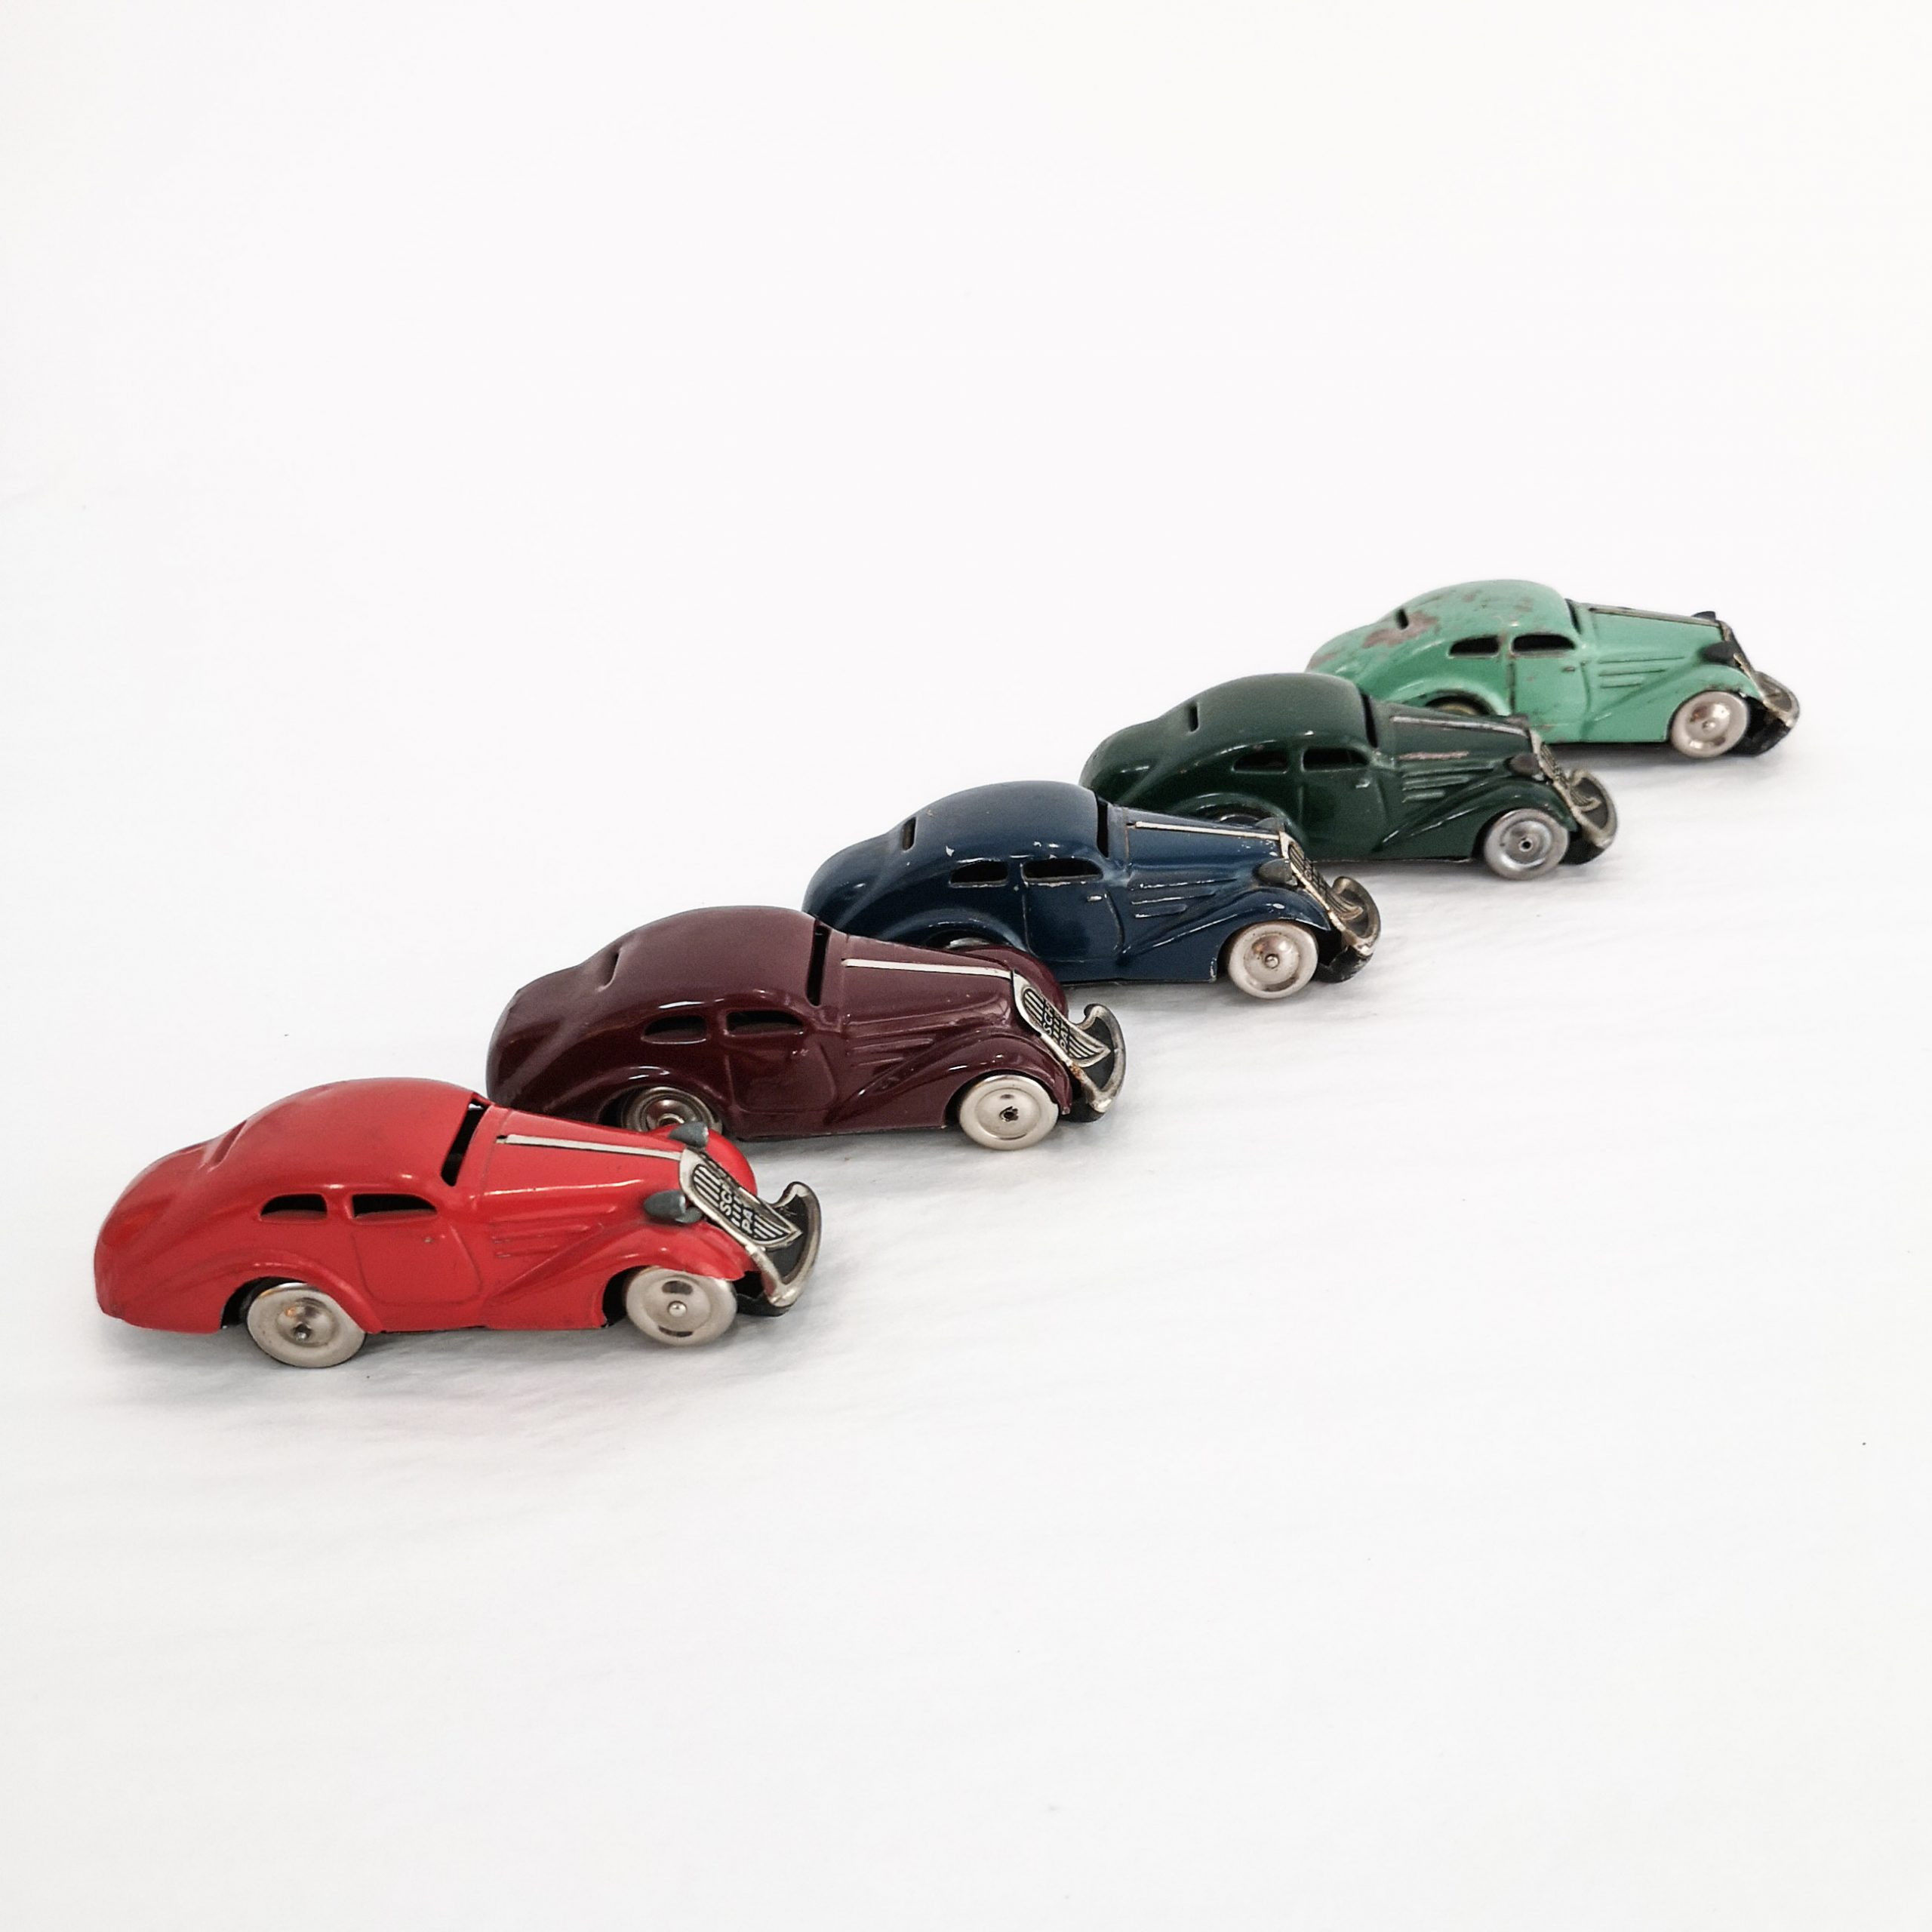 Colourful fleet of Schuco Patent Auto tinplate clockwork cars with turn-back feature. 1.5